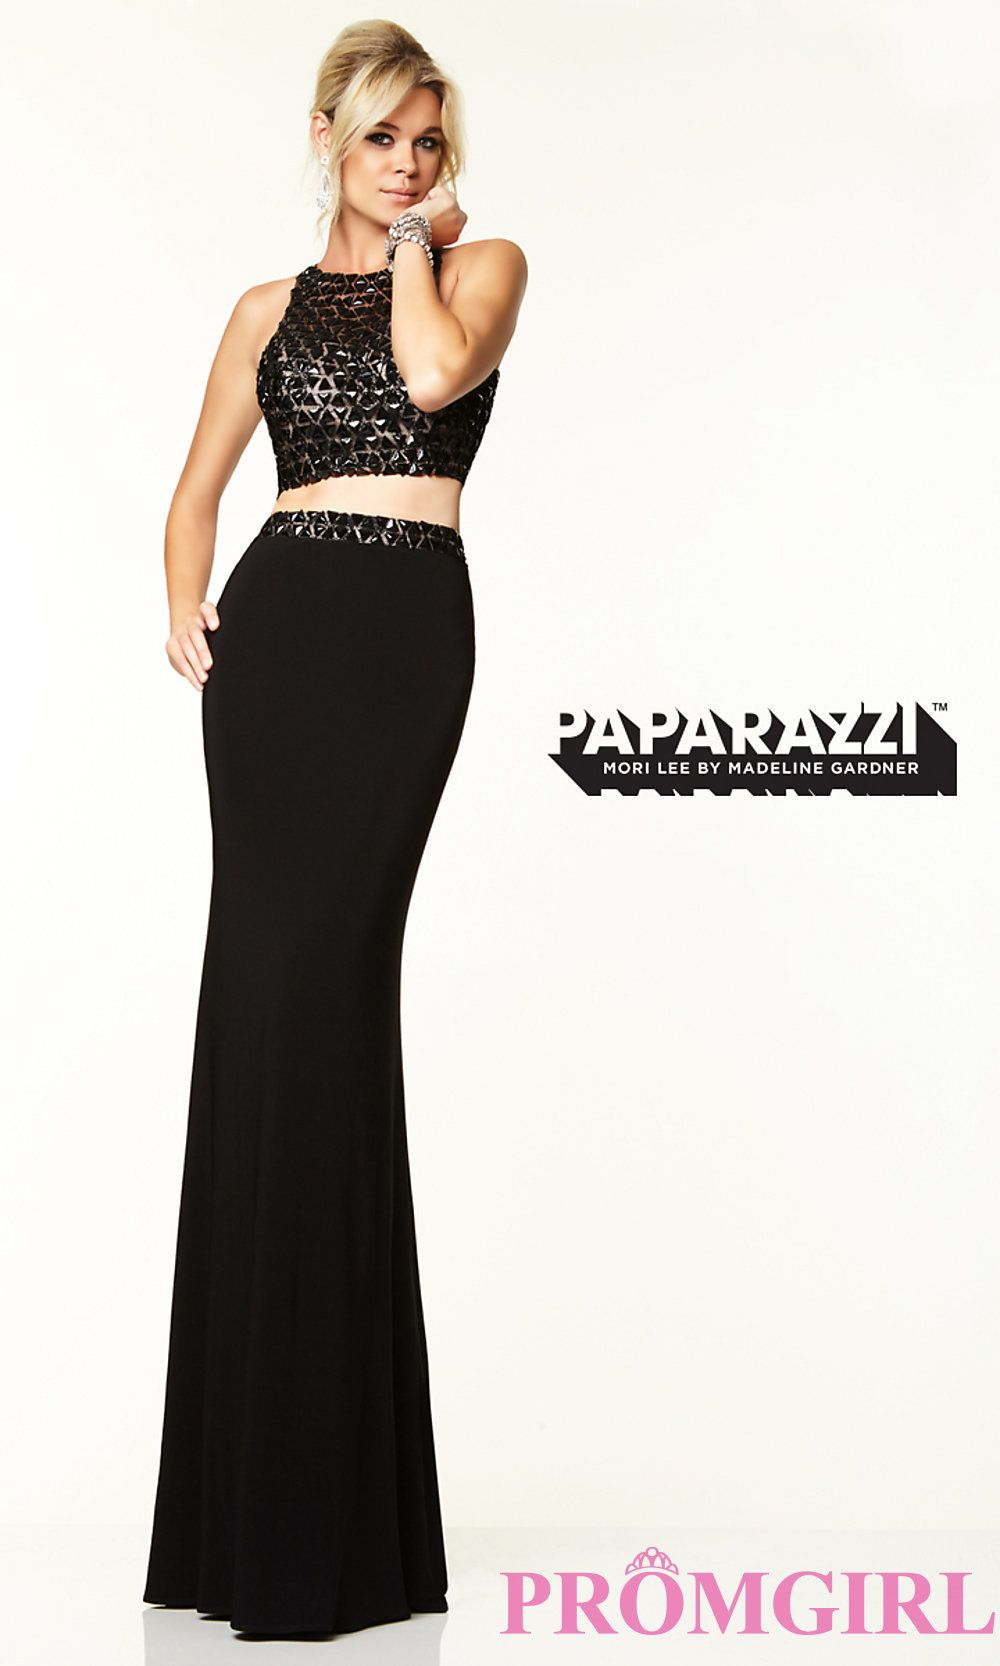 2015 Prom Dresses with Shoes